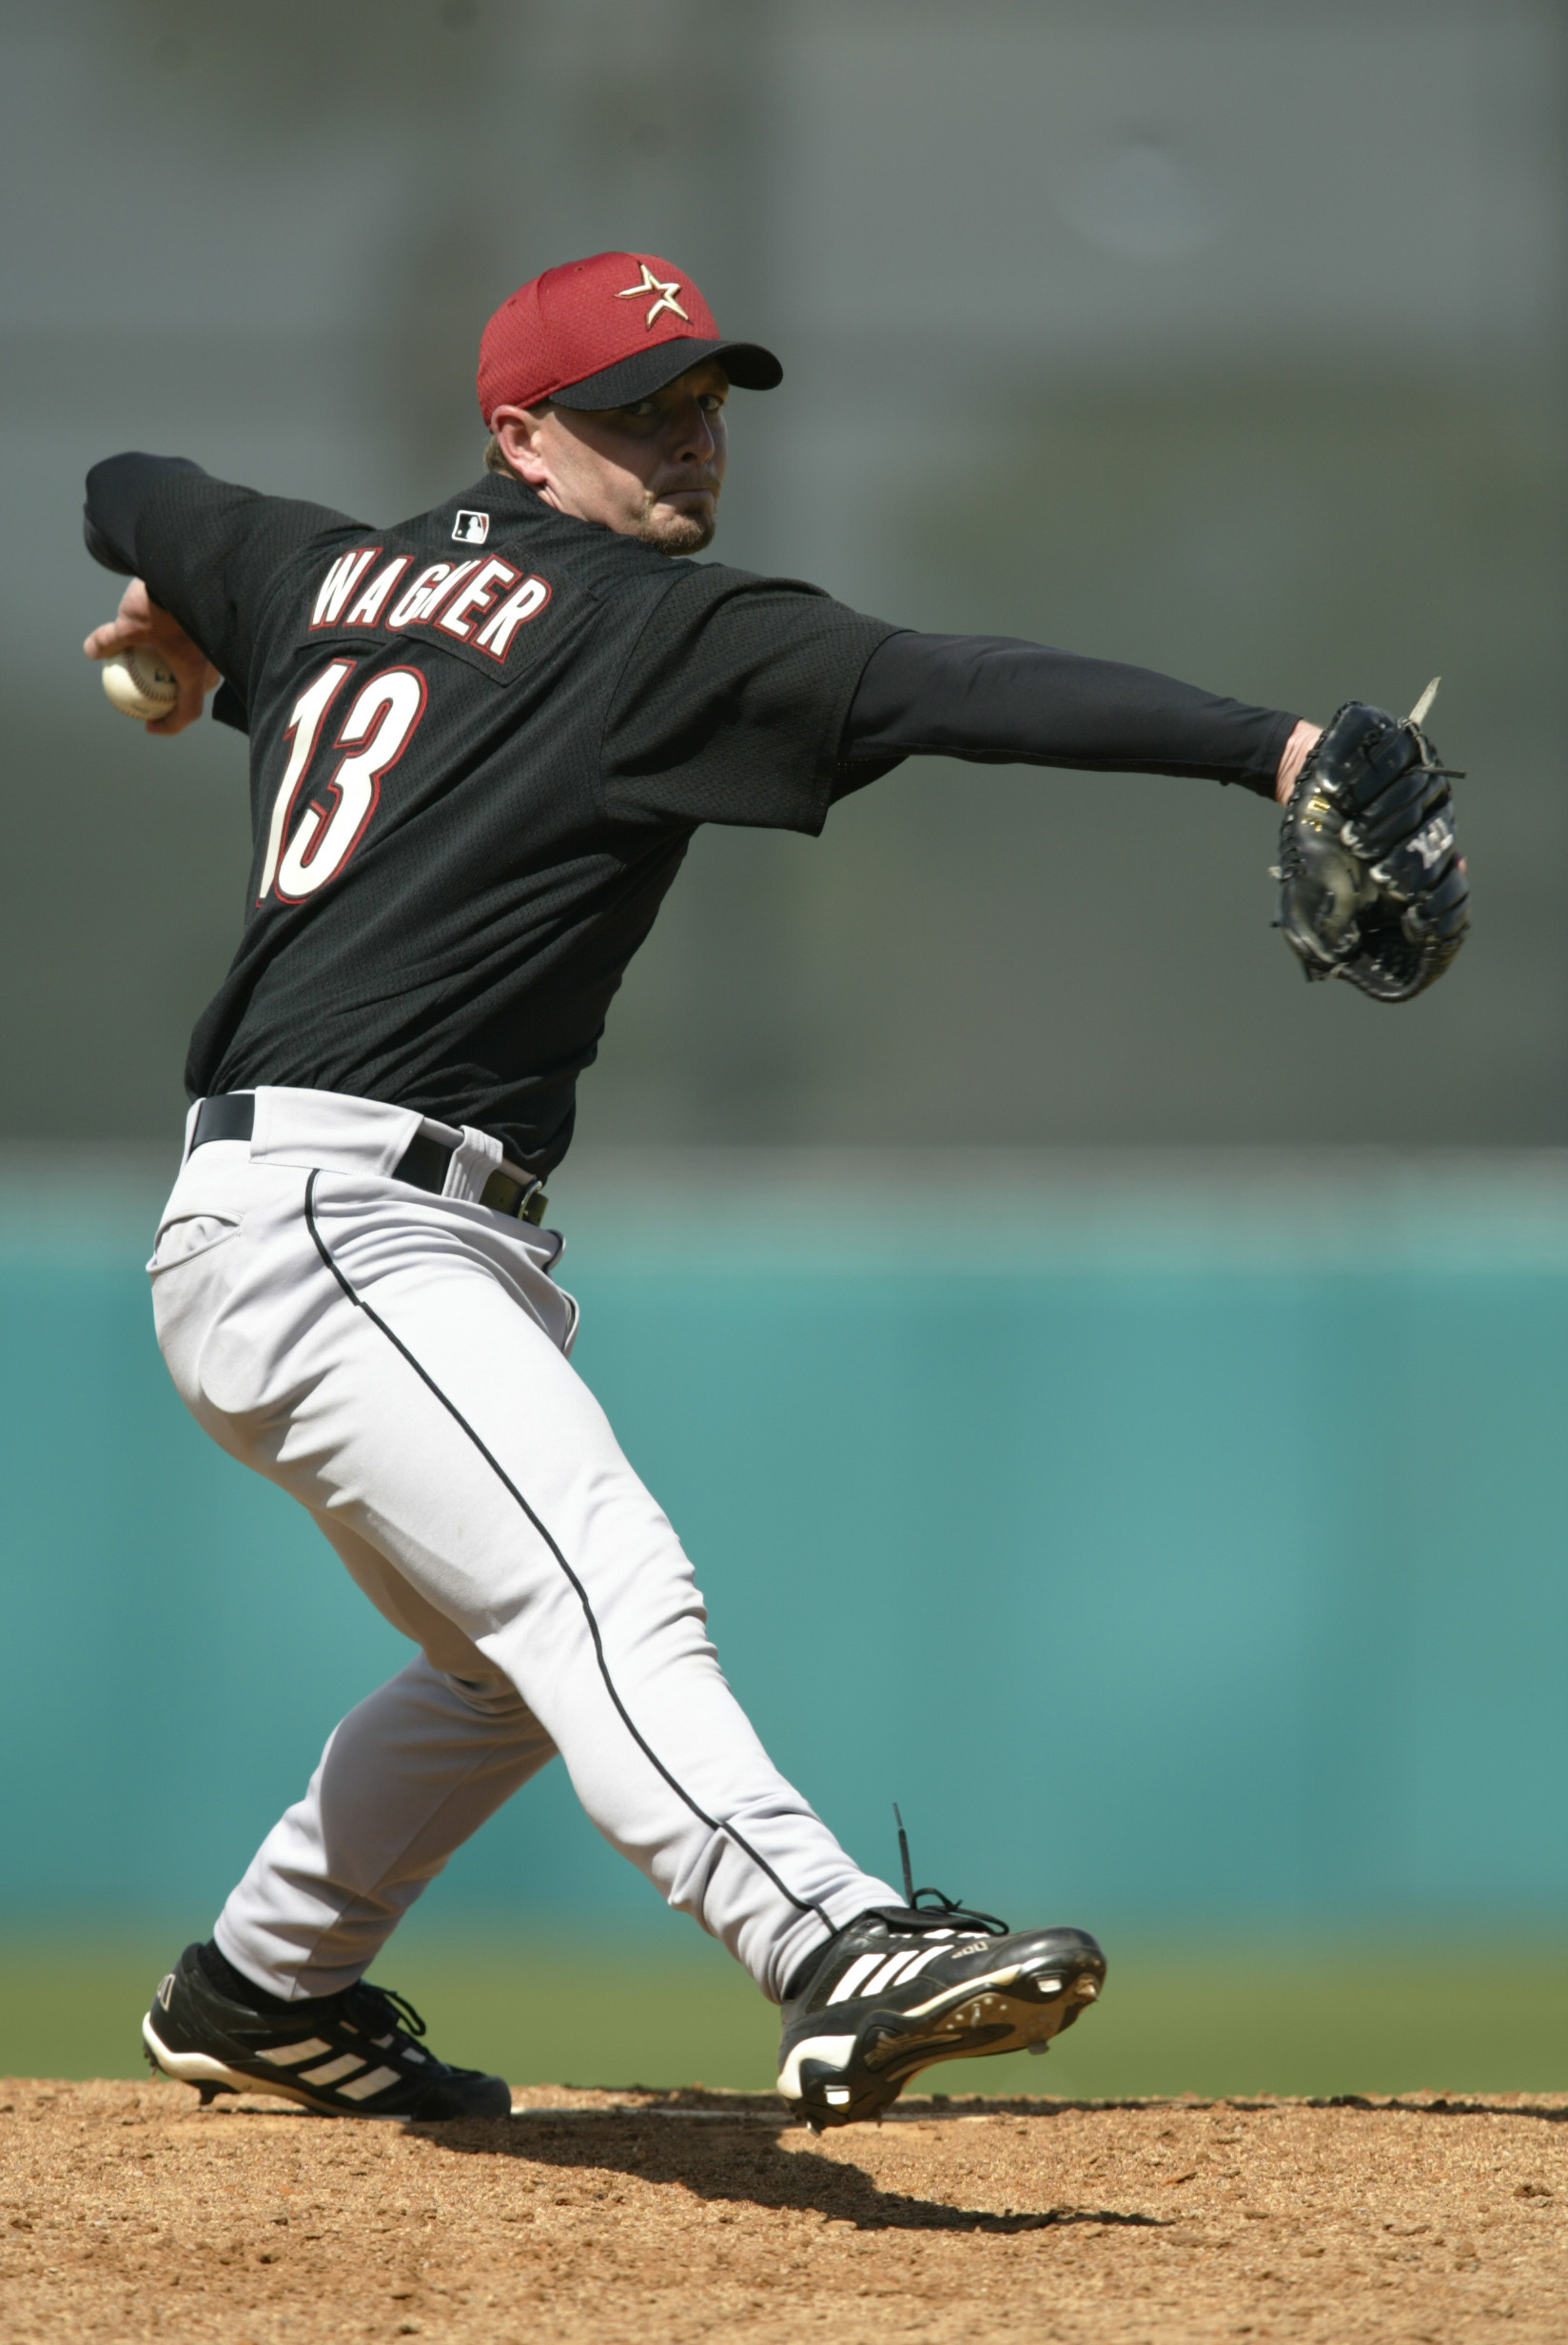 Billy Wagner was a left handed flamethower with a very good career